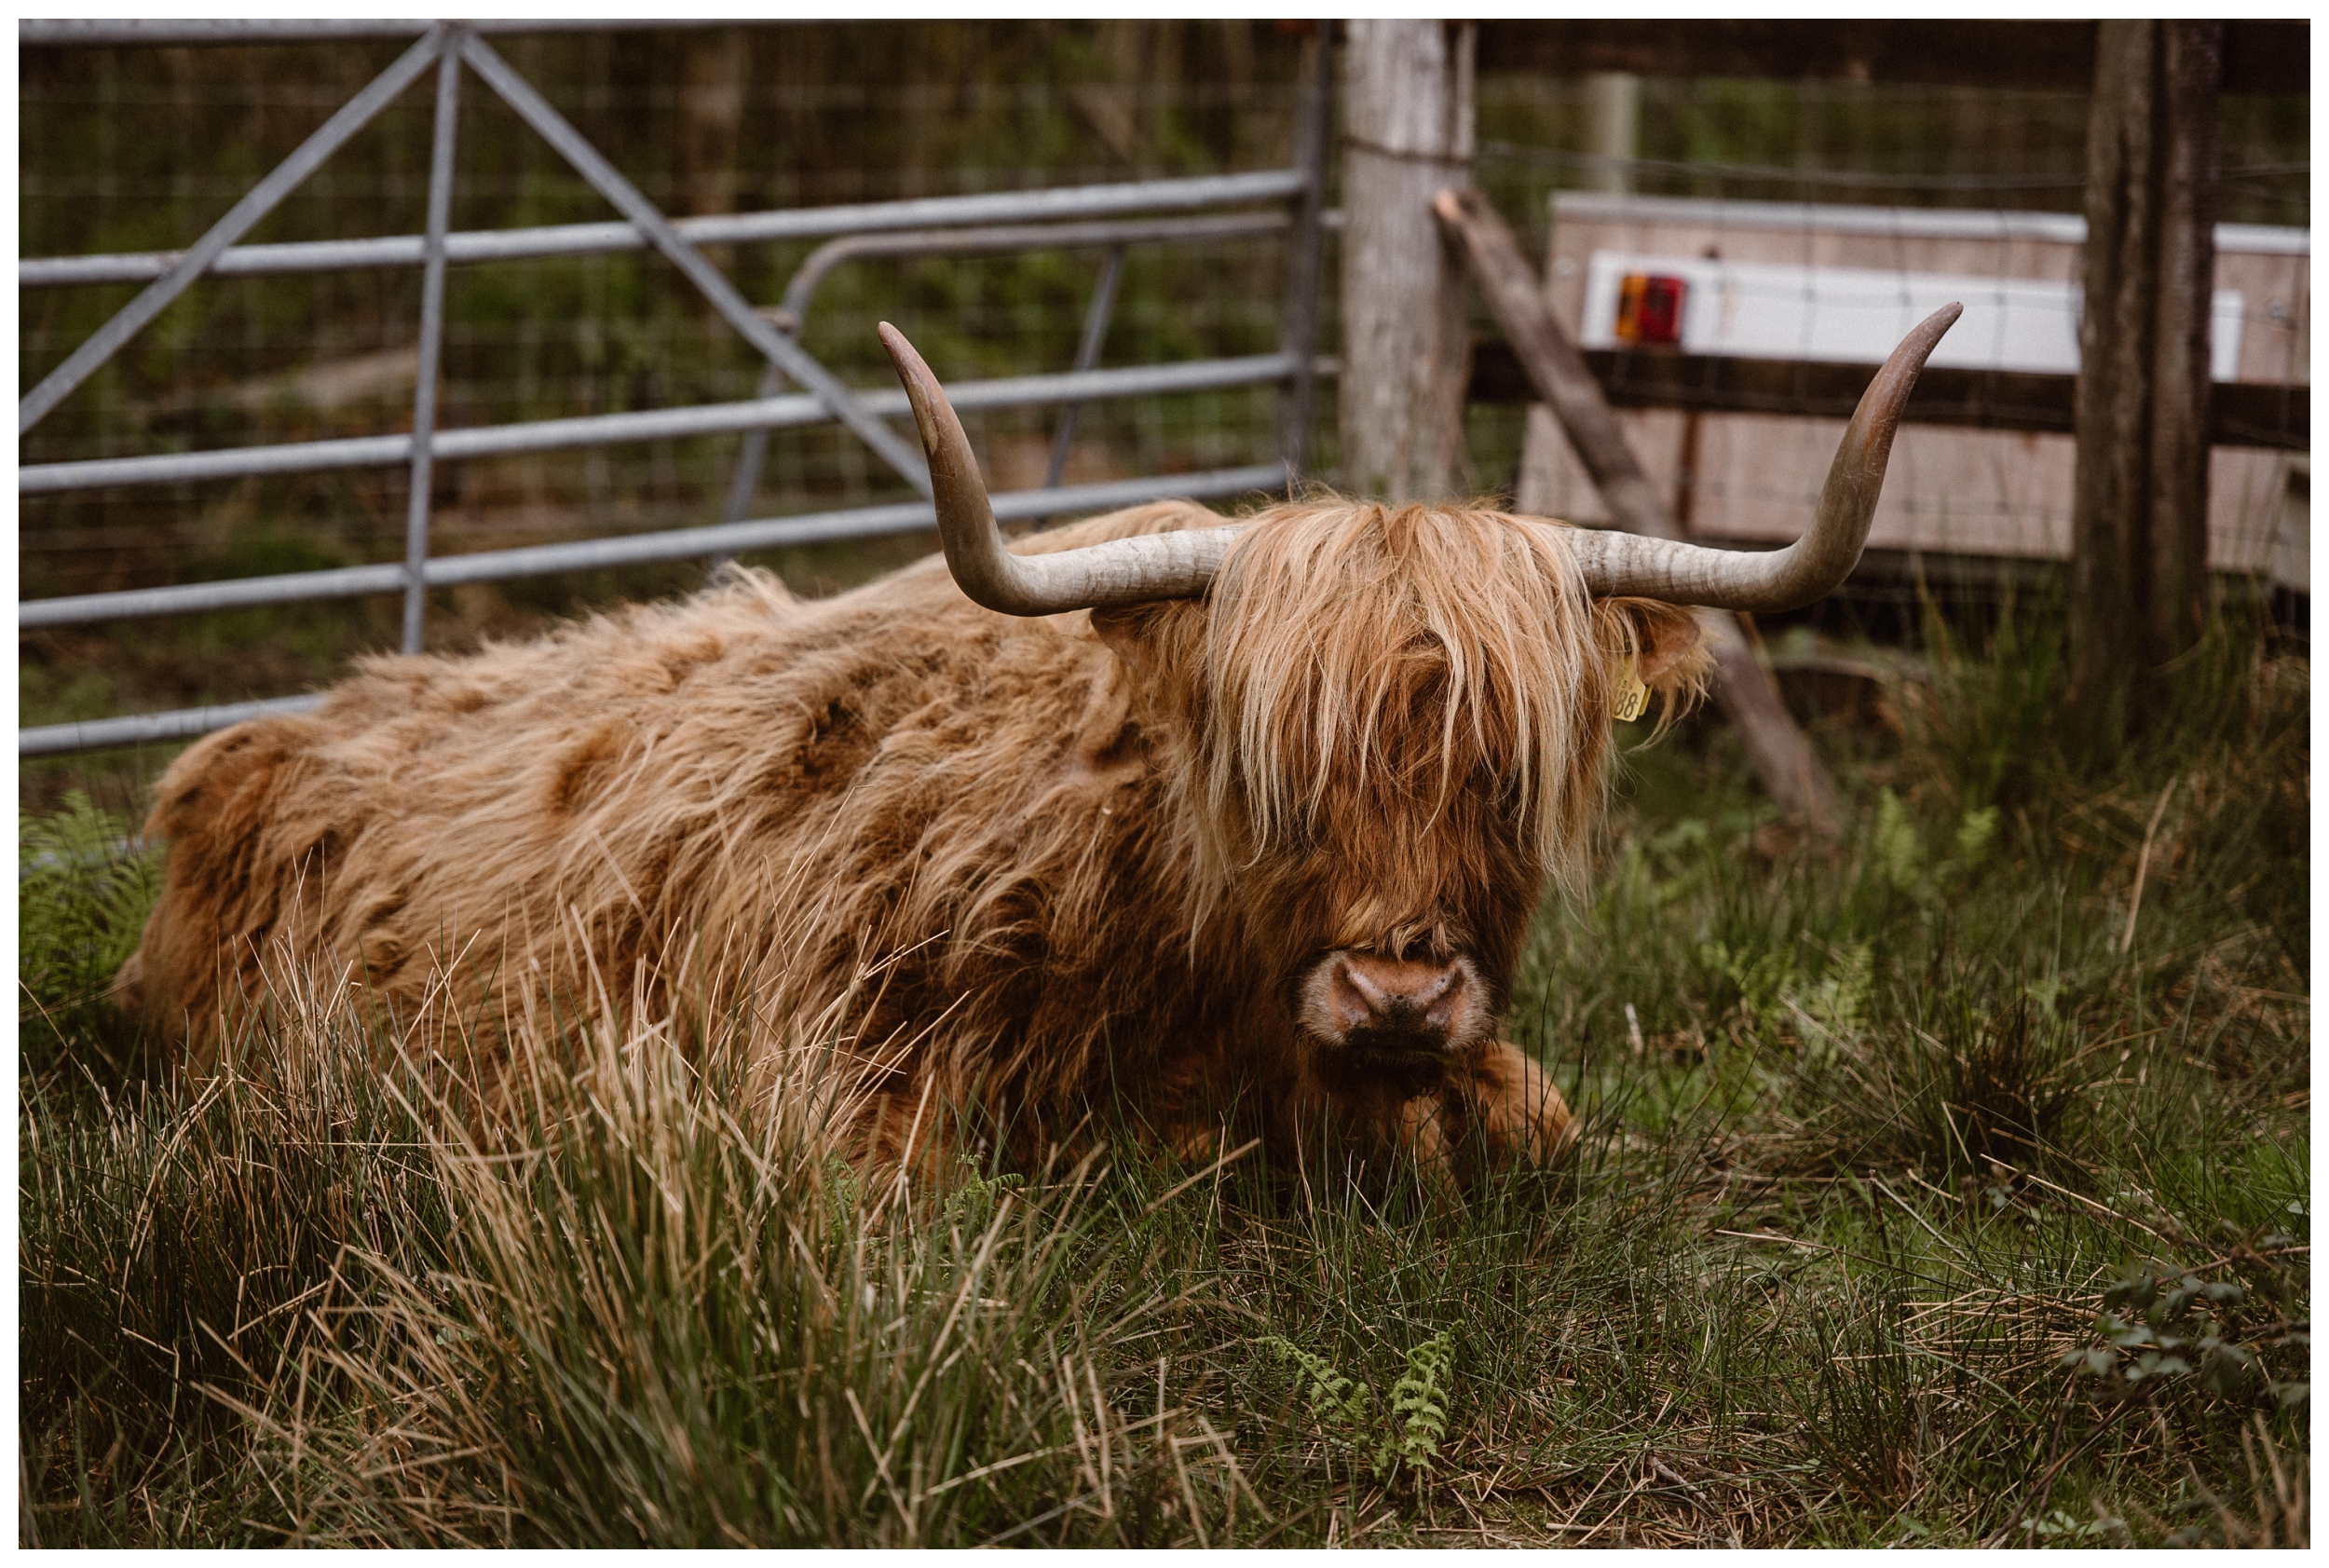 A Scottish Highland cow hangs out outside Kilchurn castle in the Scottish Highlands. Photo by Maddie Mae, Adventure Instead.